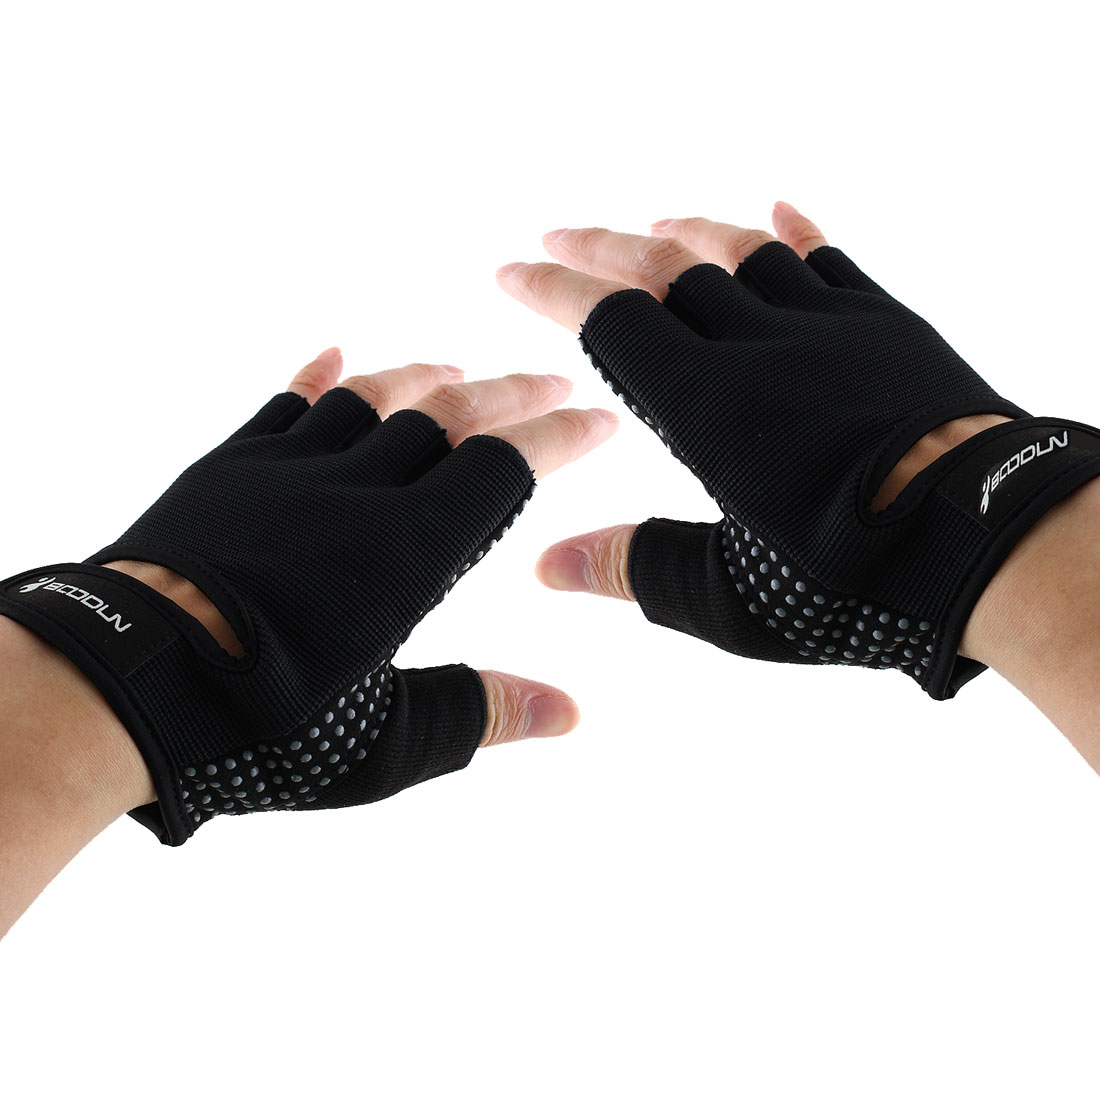 BOODUN Authorized Adult Unisex Spandex Adjustable Sports Training Workout Mittens Fitness Gloves Black XL Pair